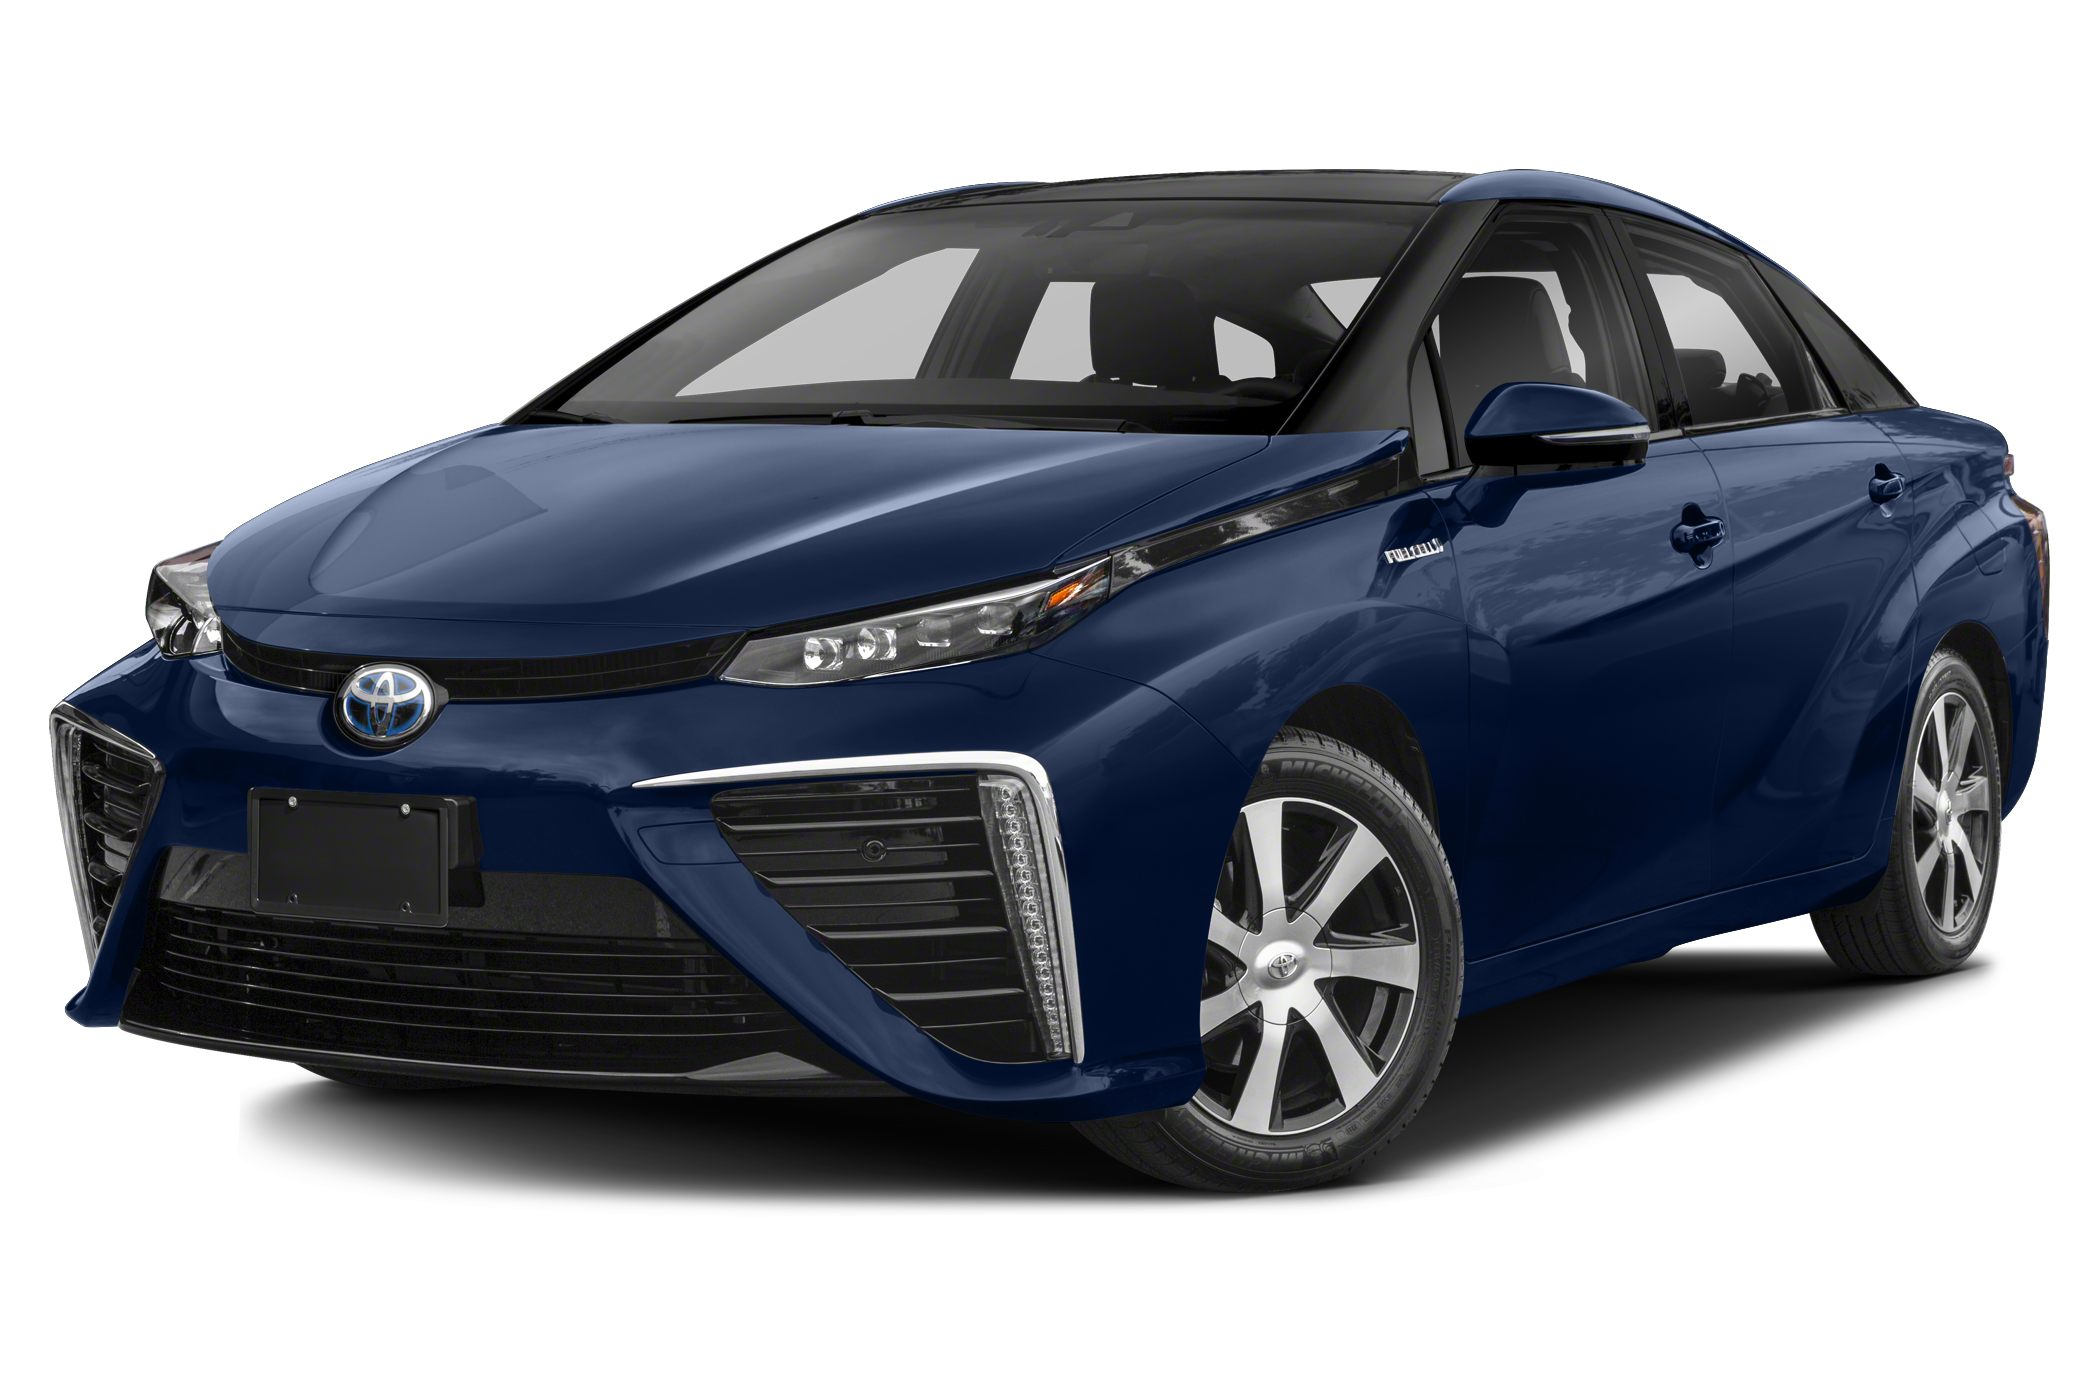 Certified Pre Owned >> Toyota Mirai News, Photos and Buying Information - Autoblog